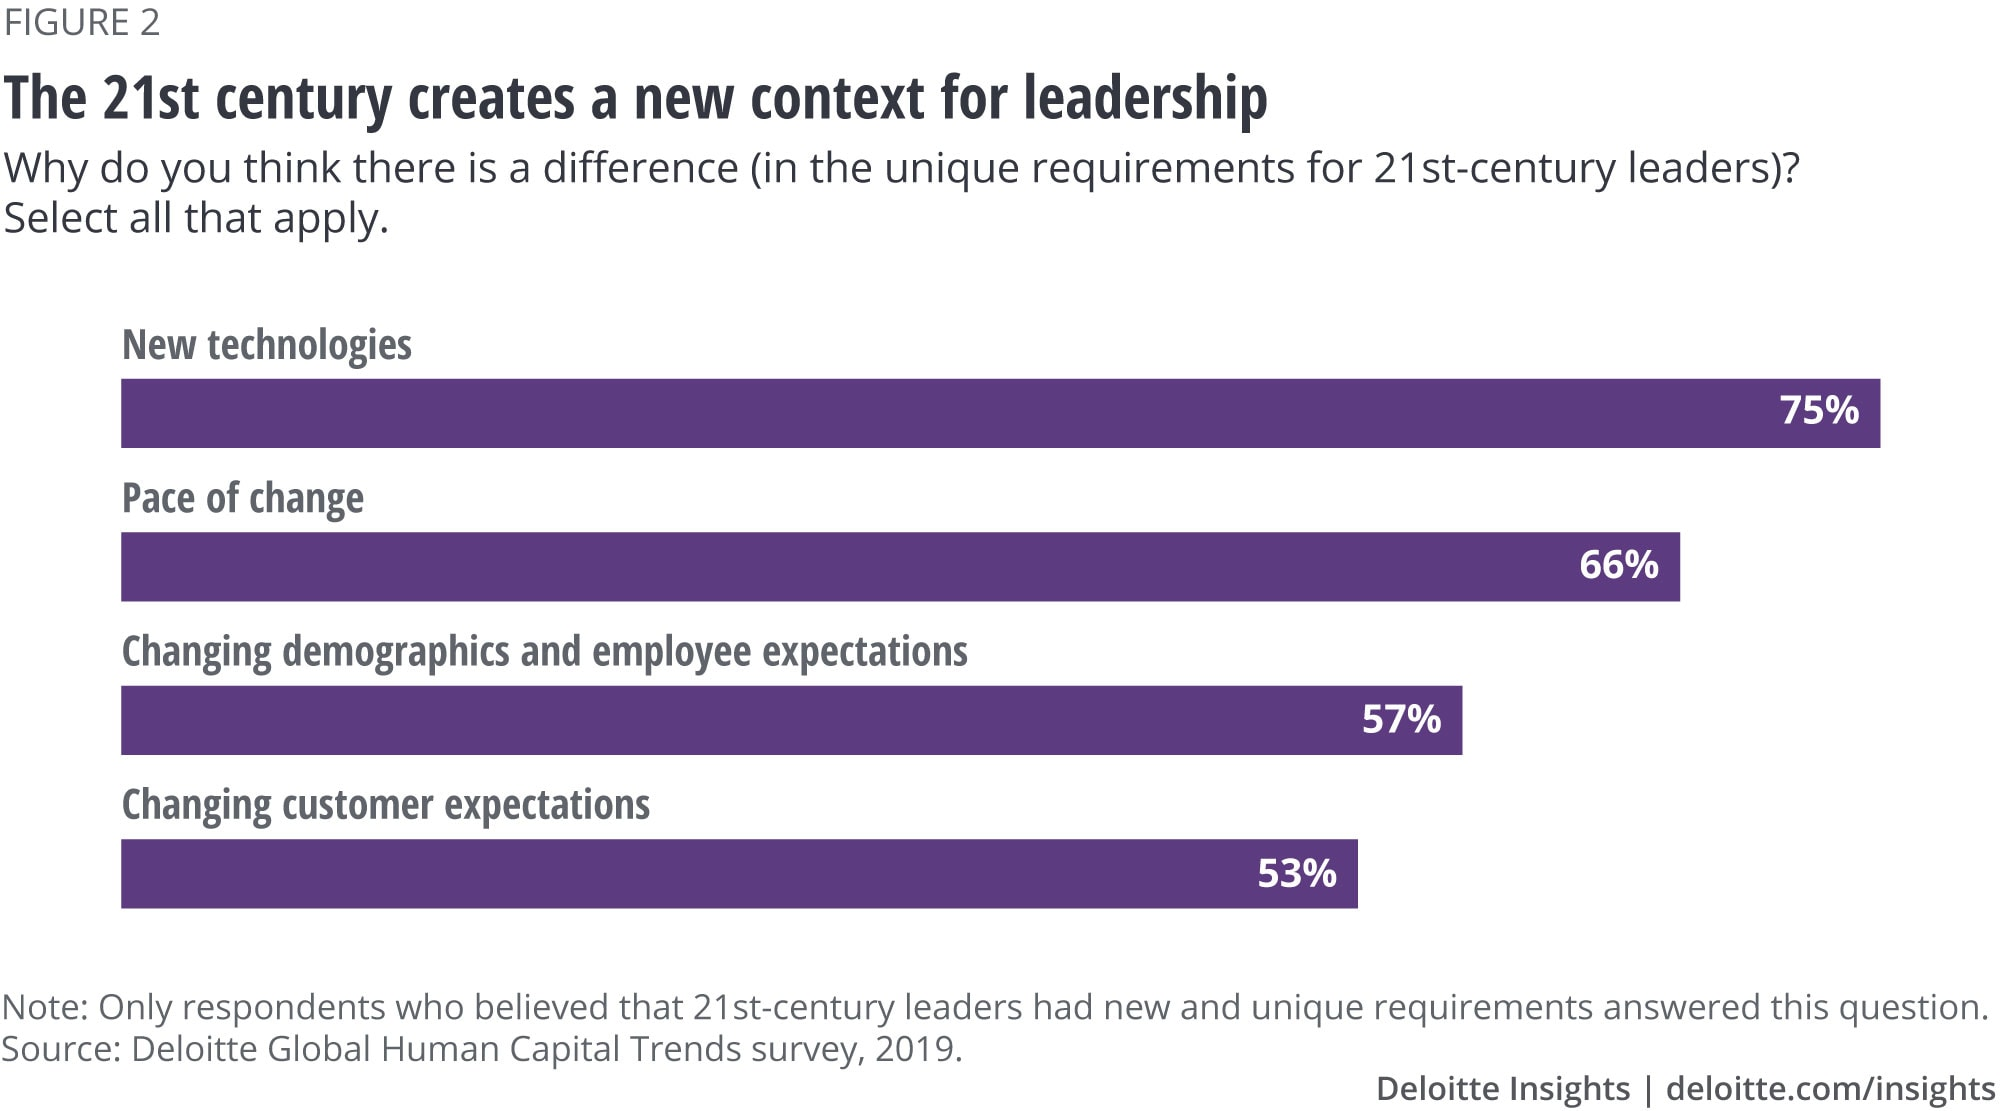 The 21st century creates a new context for leadership